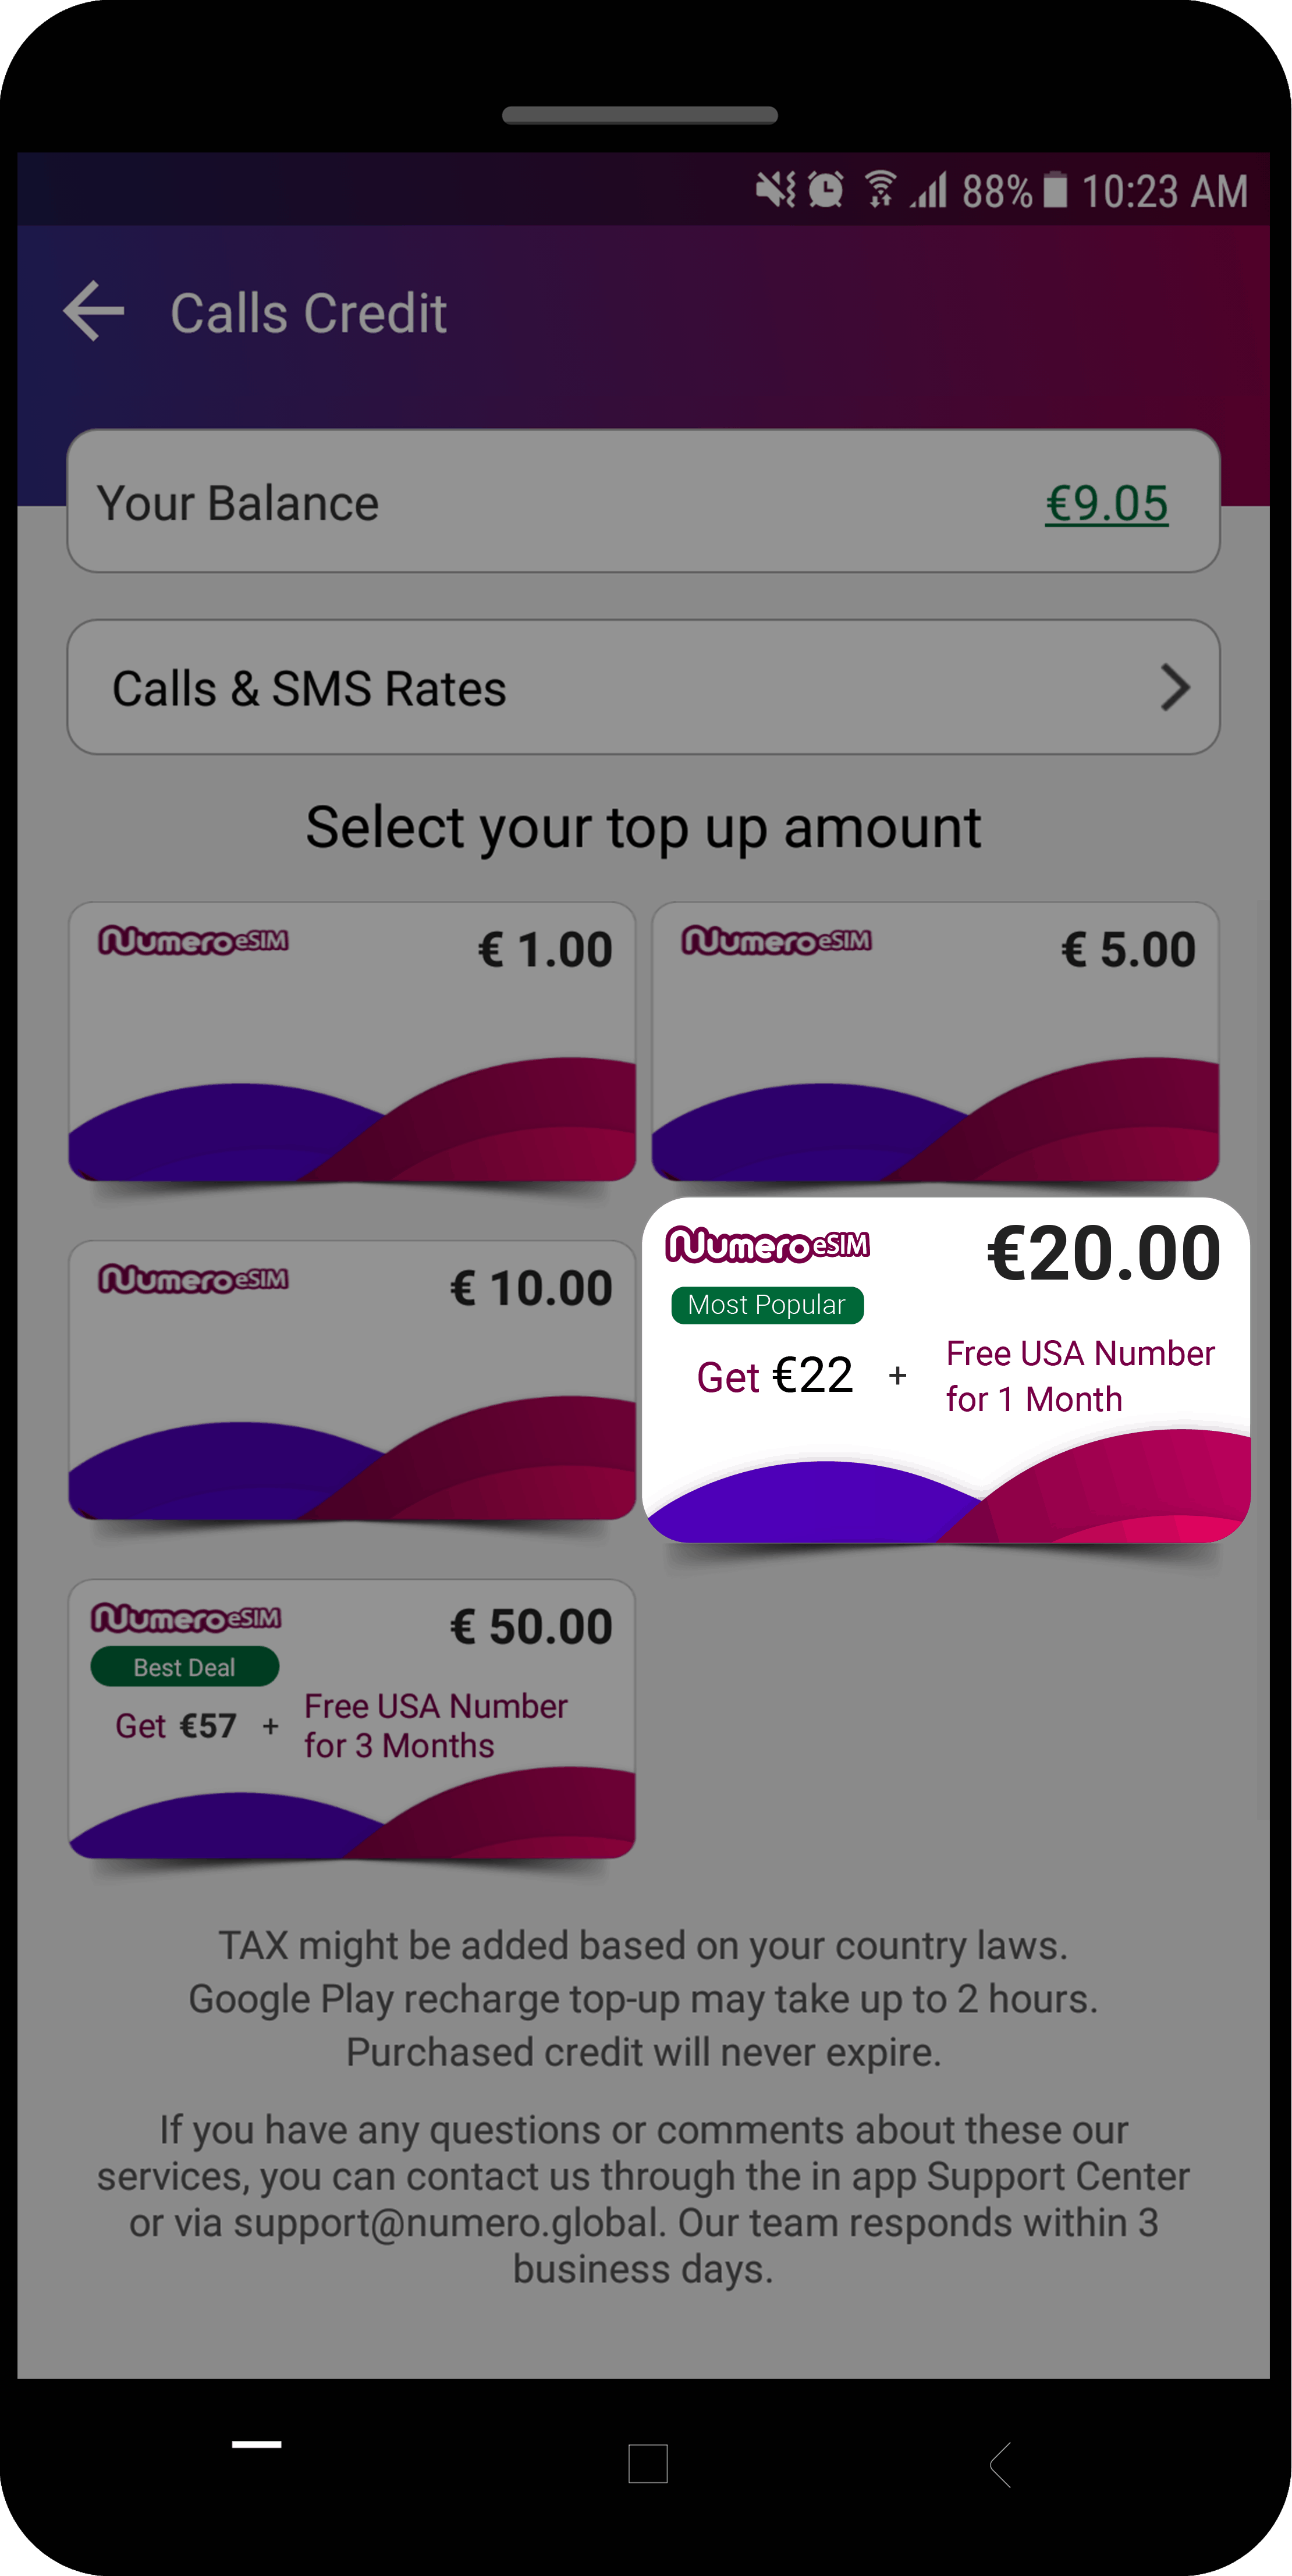 recharge €20 credit